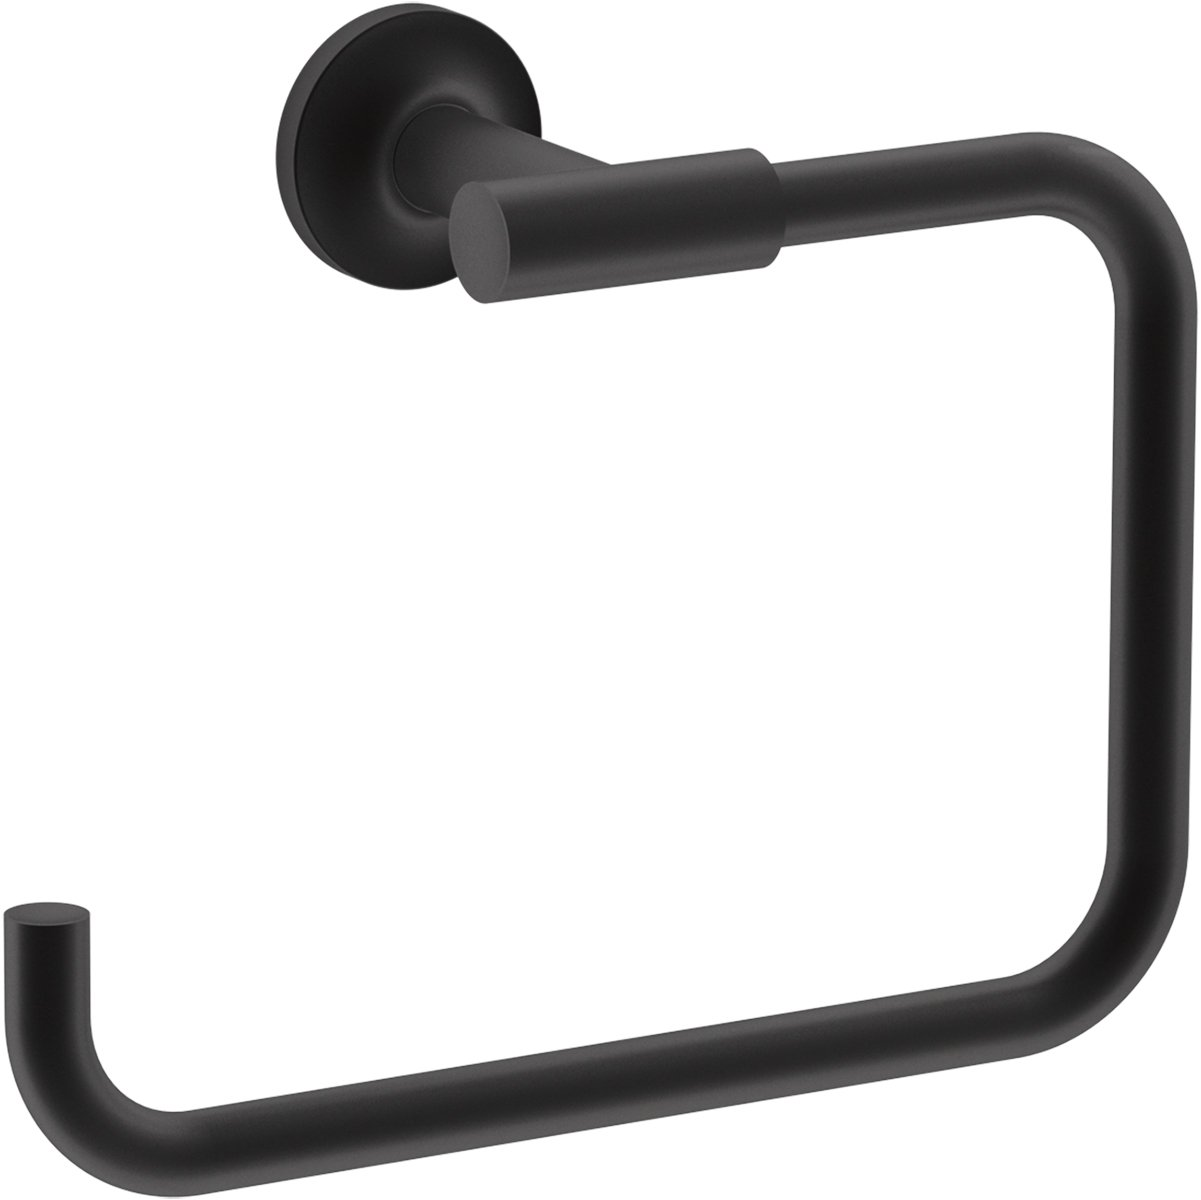 KOHLER 14441-BL Purist Towel ring, Matte Black